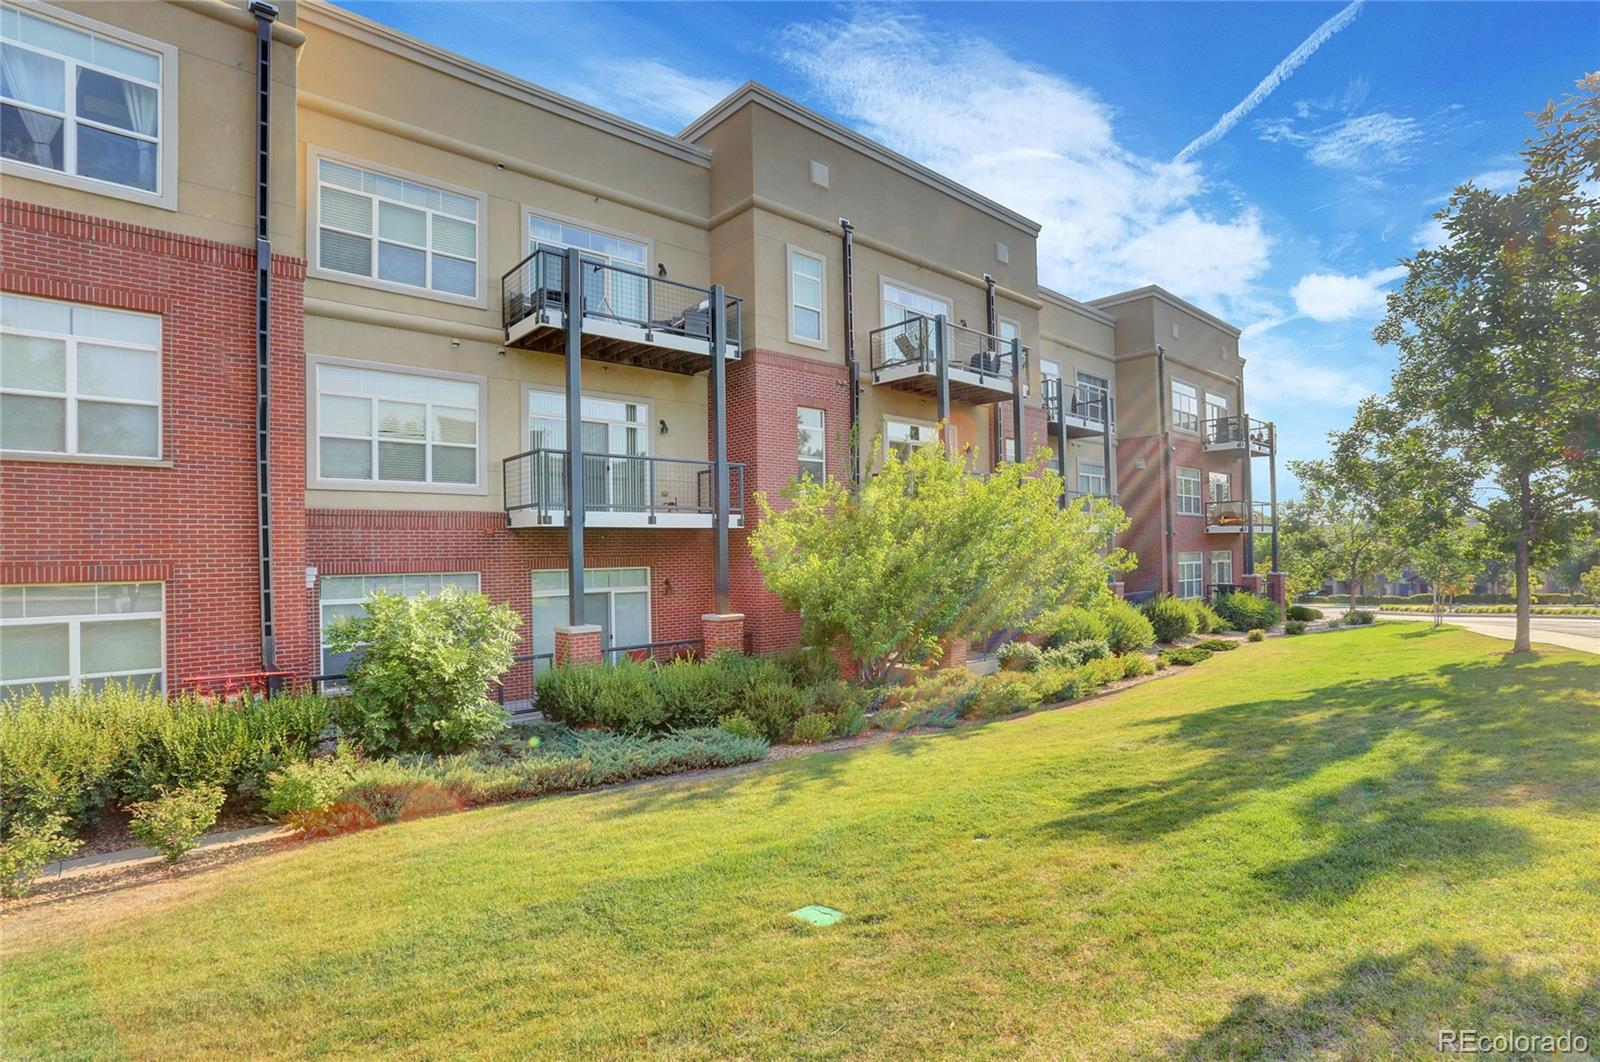 5401 S Park Terrace Avenue #206A Property Photo - Greenwood Village, CO real estate listing